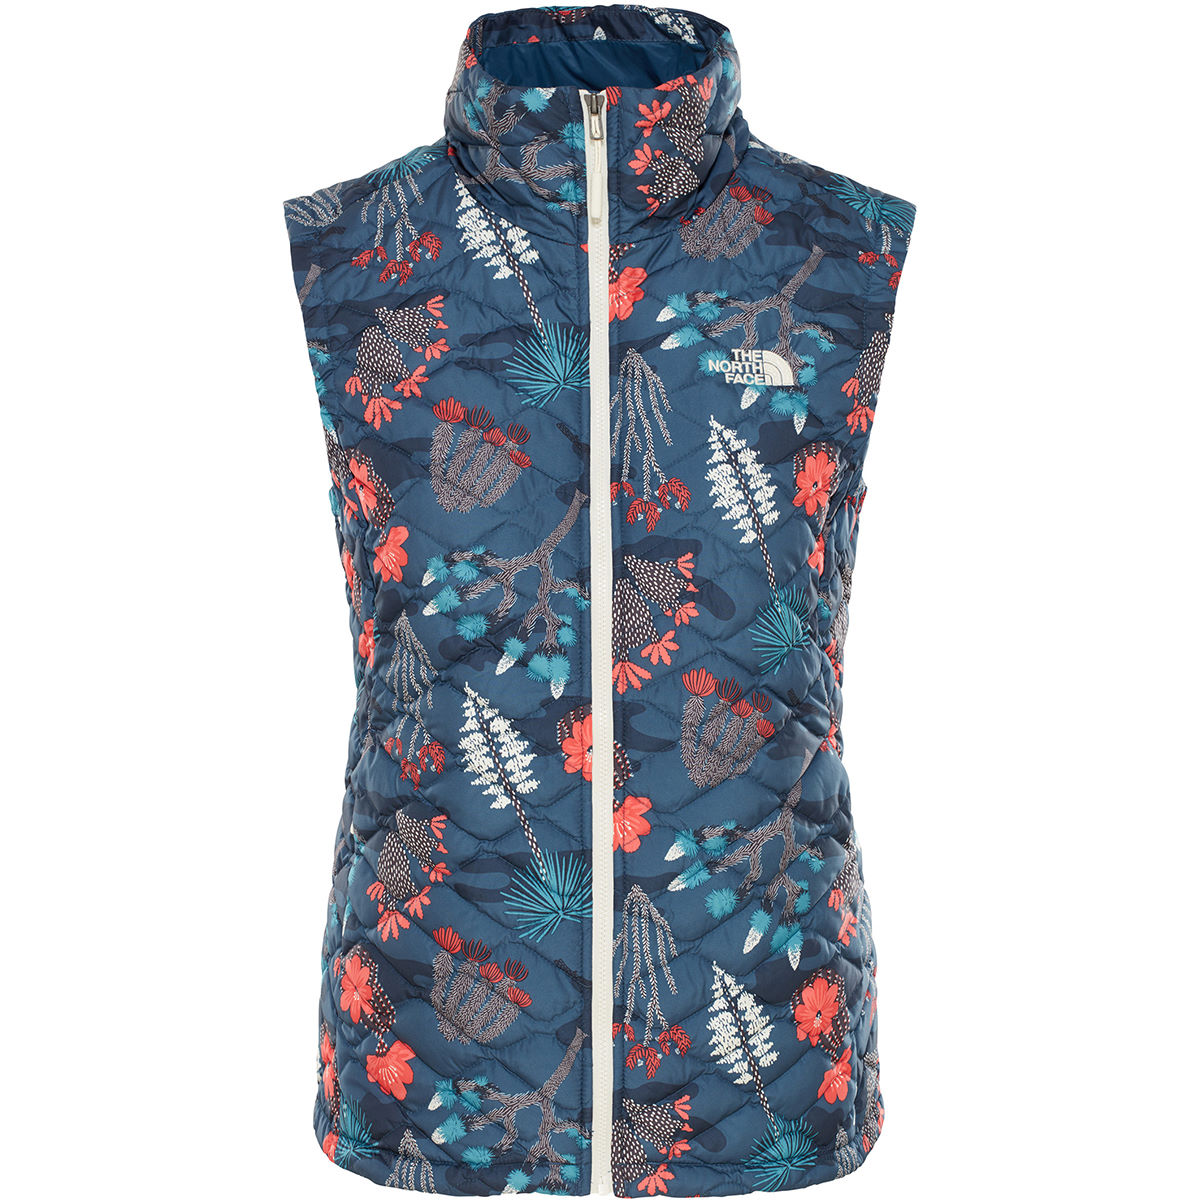 The North Face The North Face Womens Thermoball Vest   Gilets